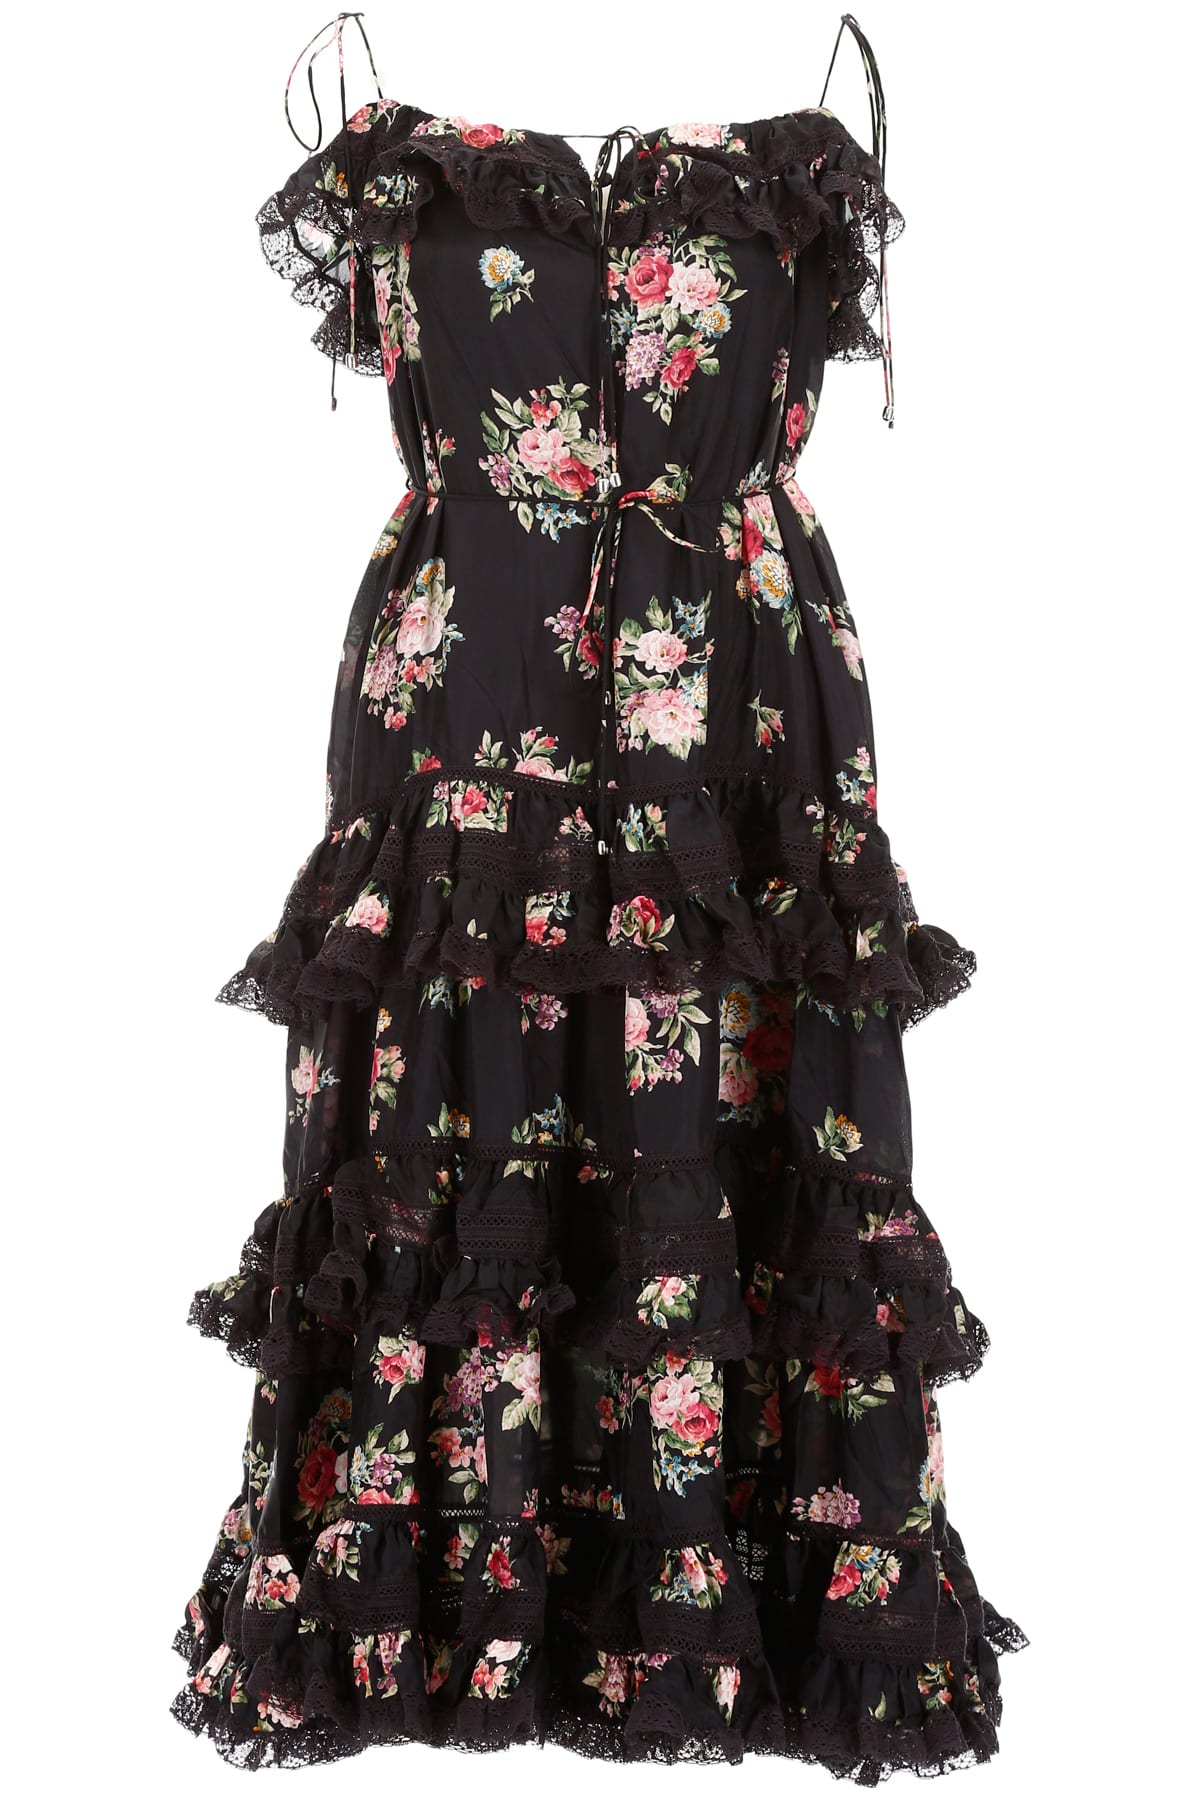 Zimmermann Floral Printed Dress